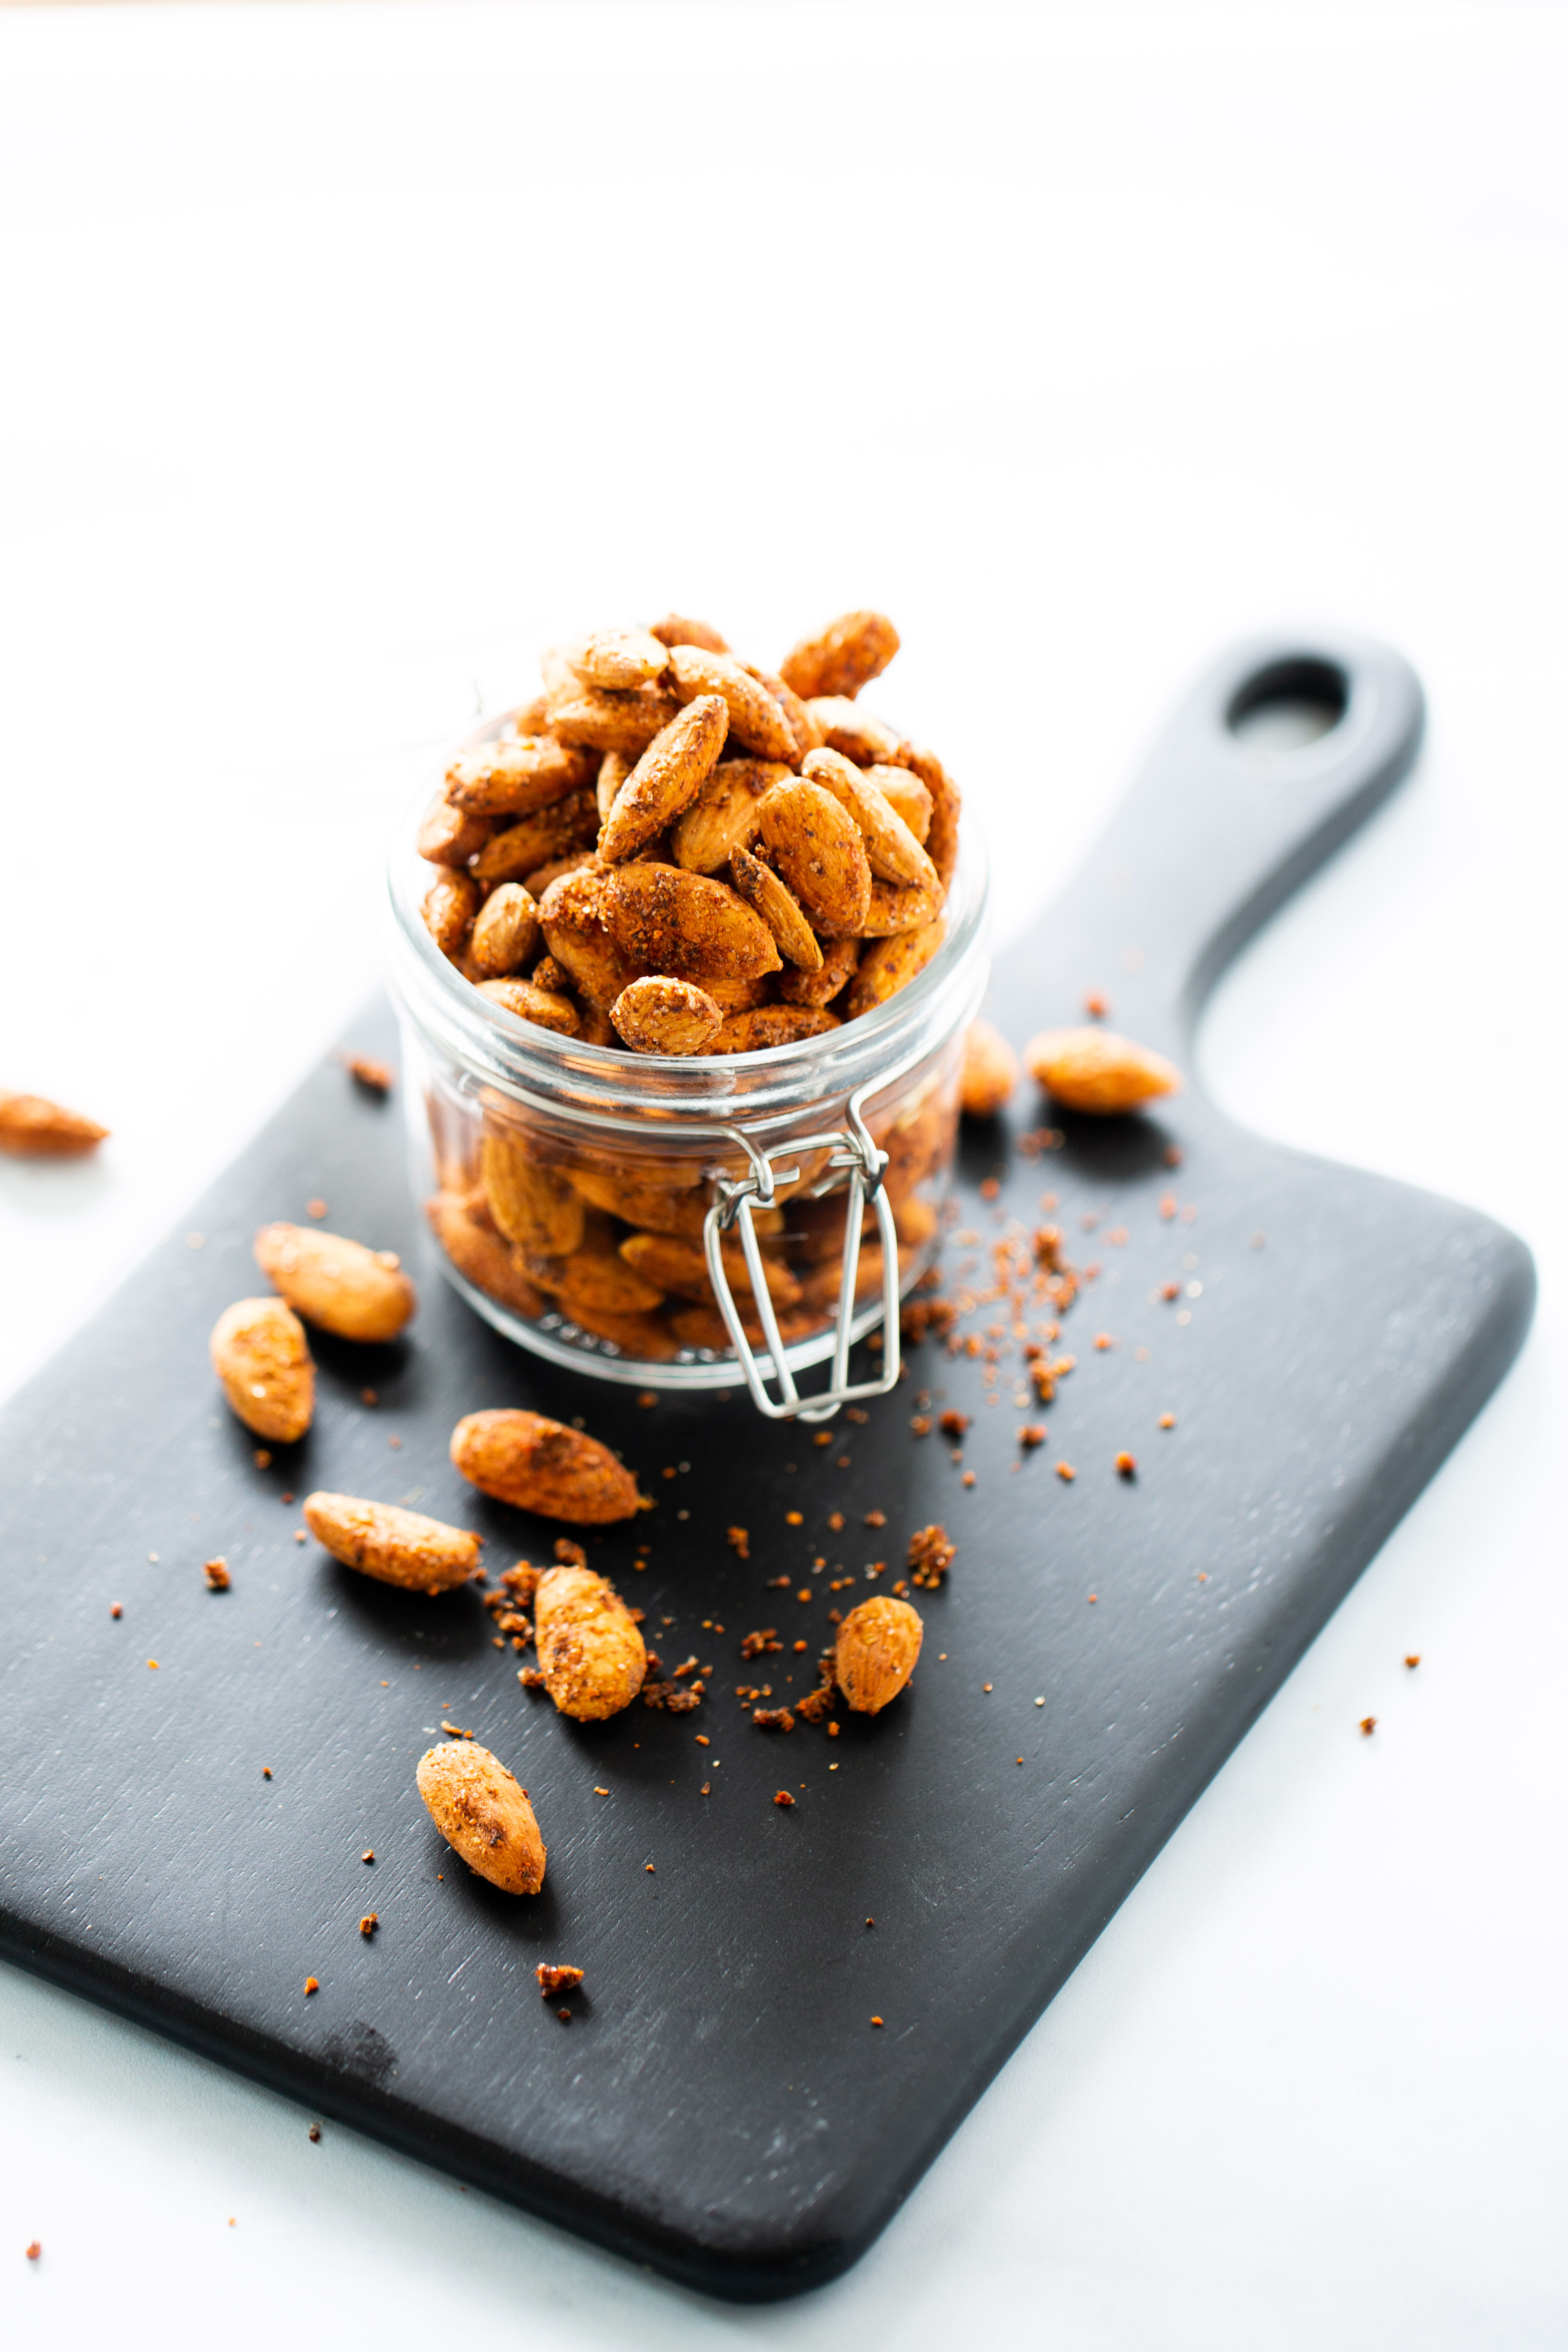 oven roasted spicy almonds